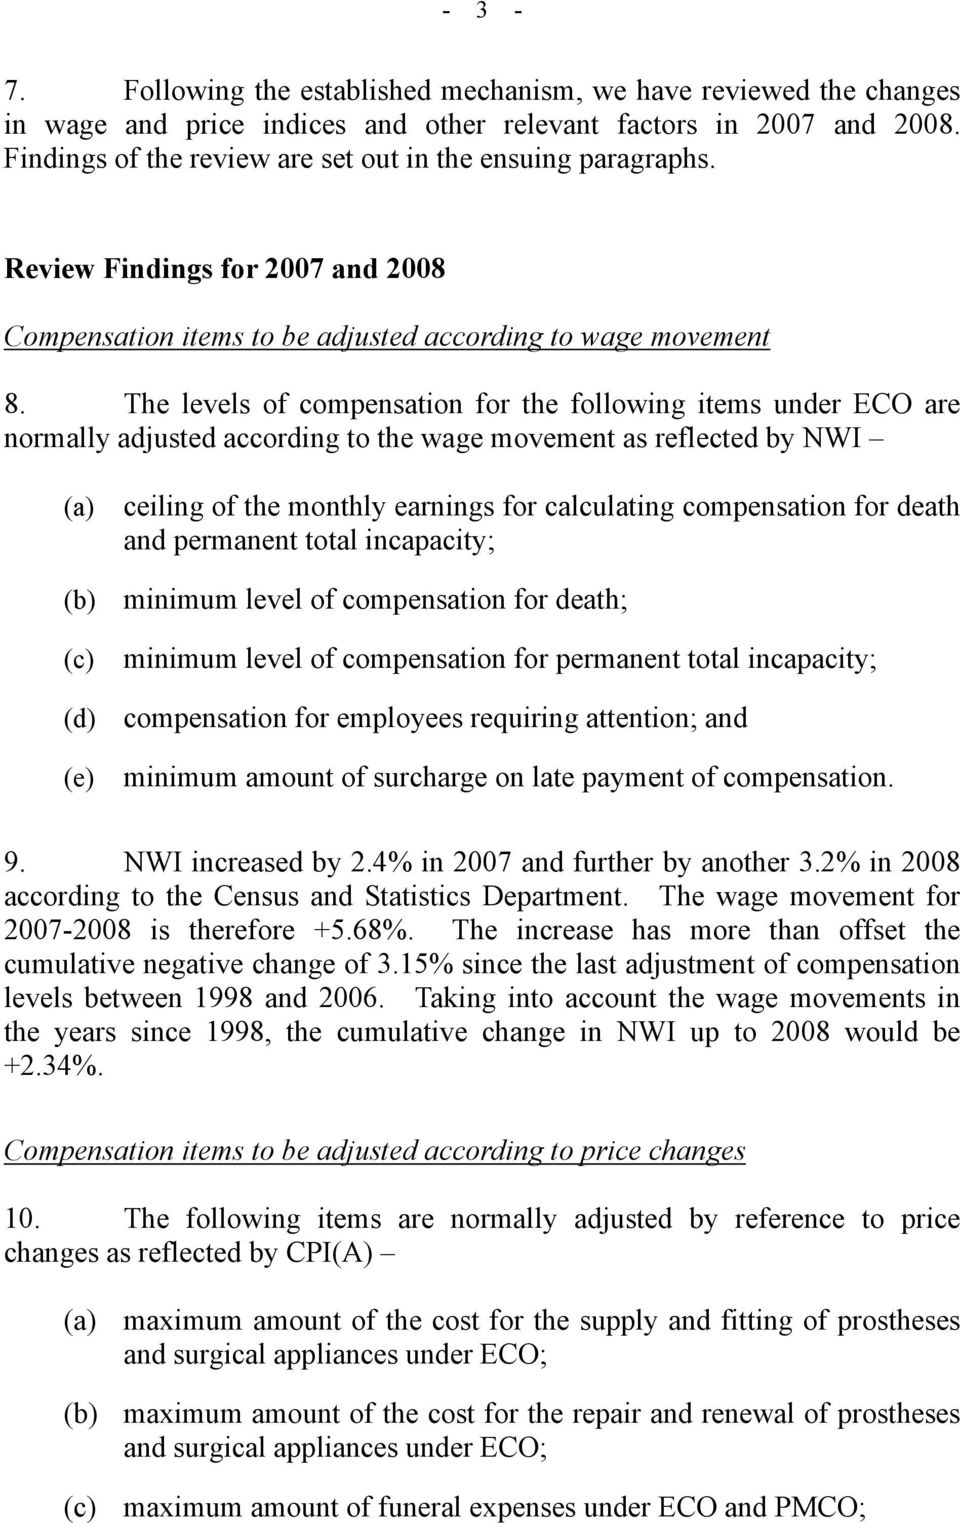 The levels of compensation for the following items under ECO are normally adjusted according to the wage movement as reflected by NWI (a) (b) (c) (d) (e) ceiling of the monthly earnings for